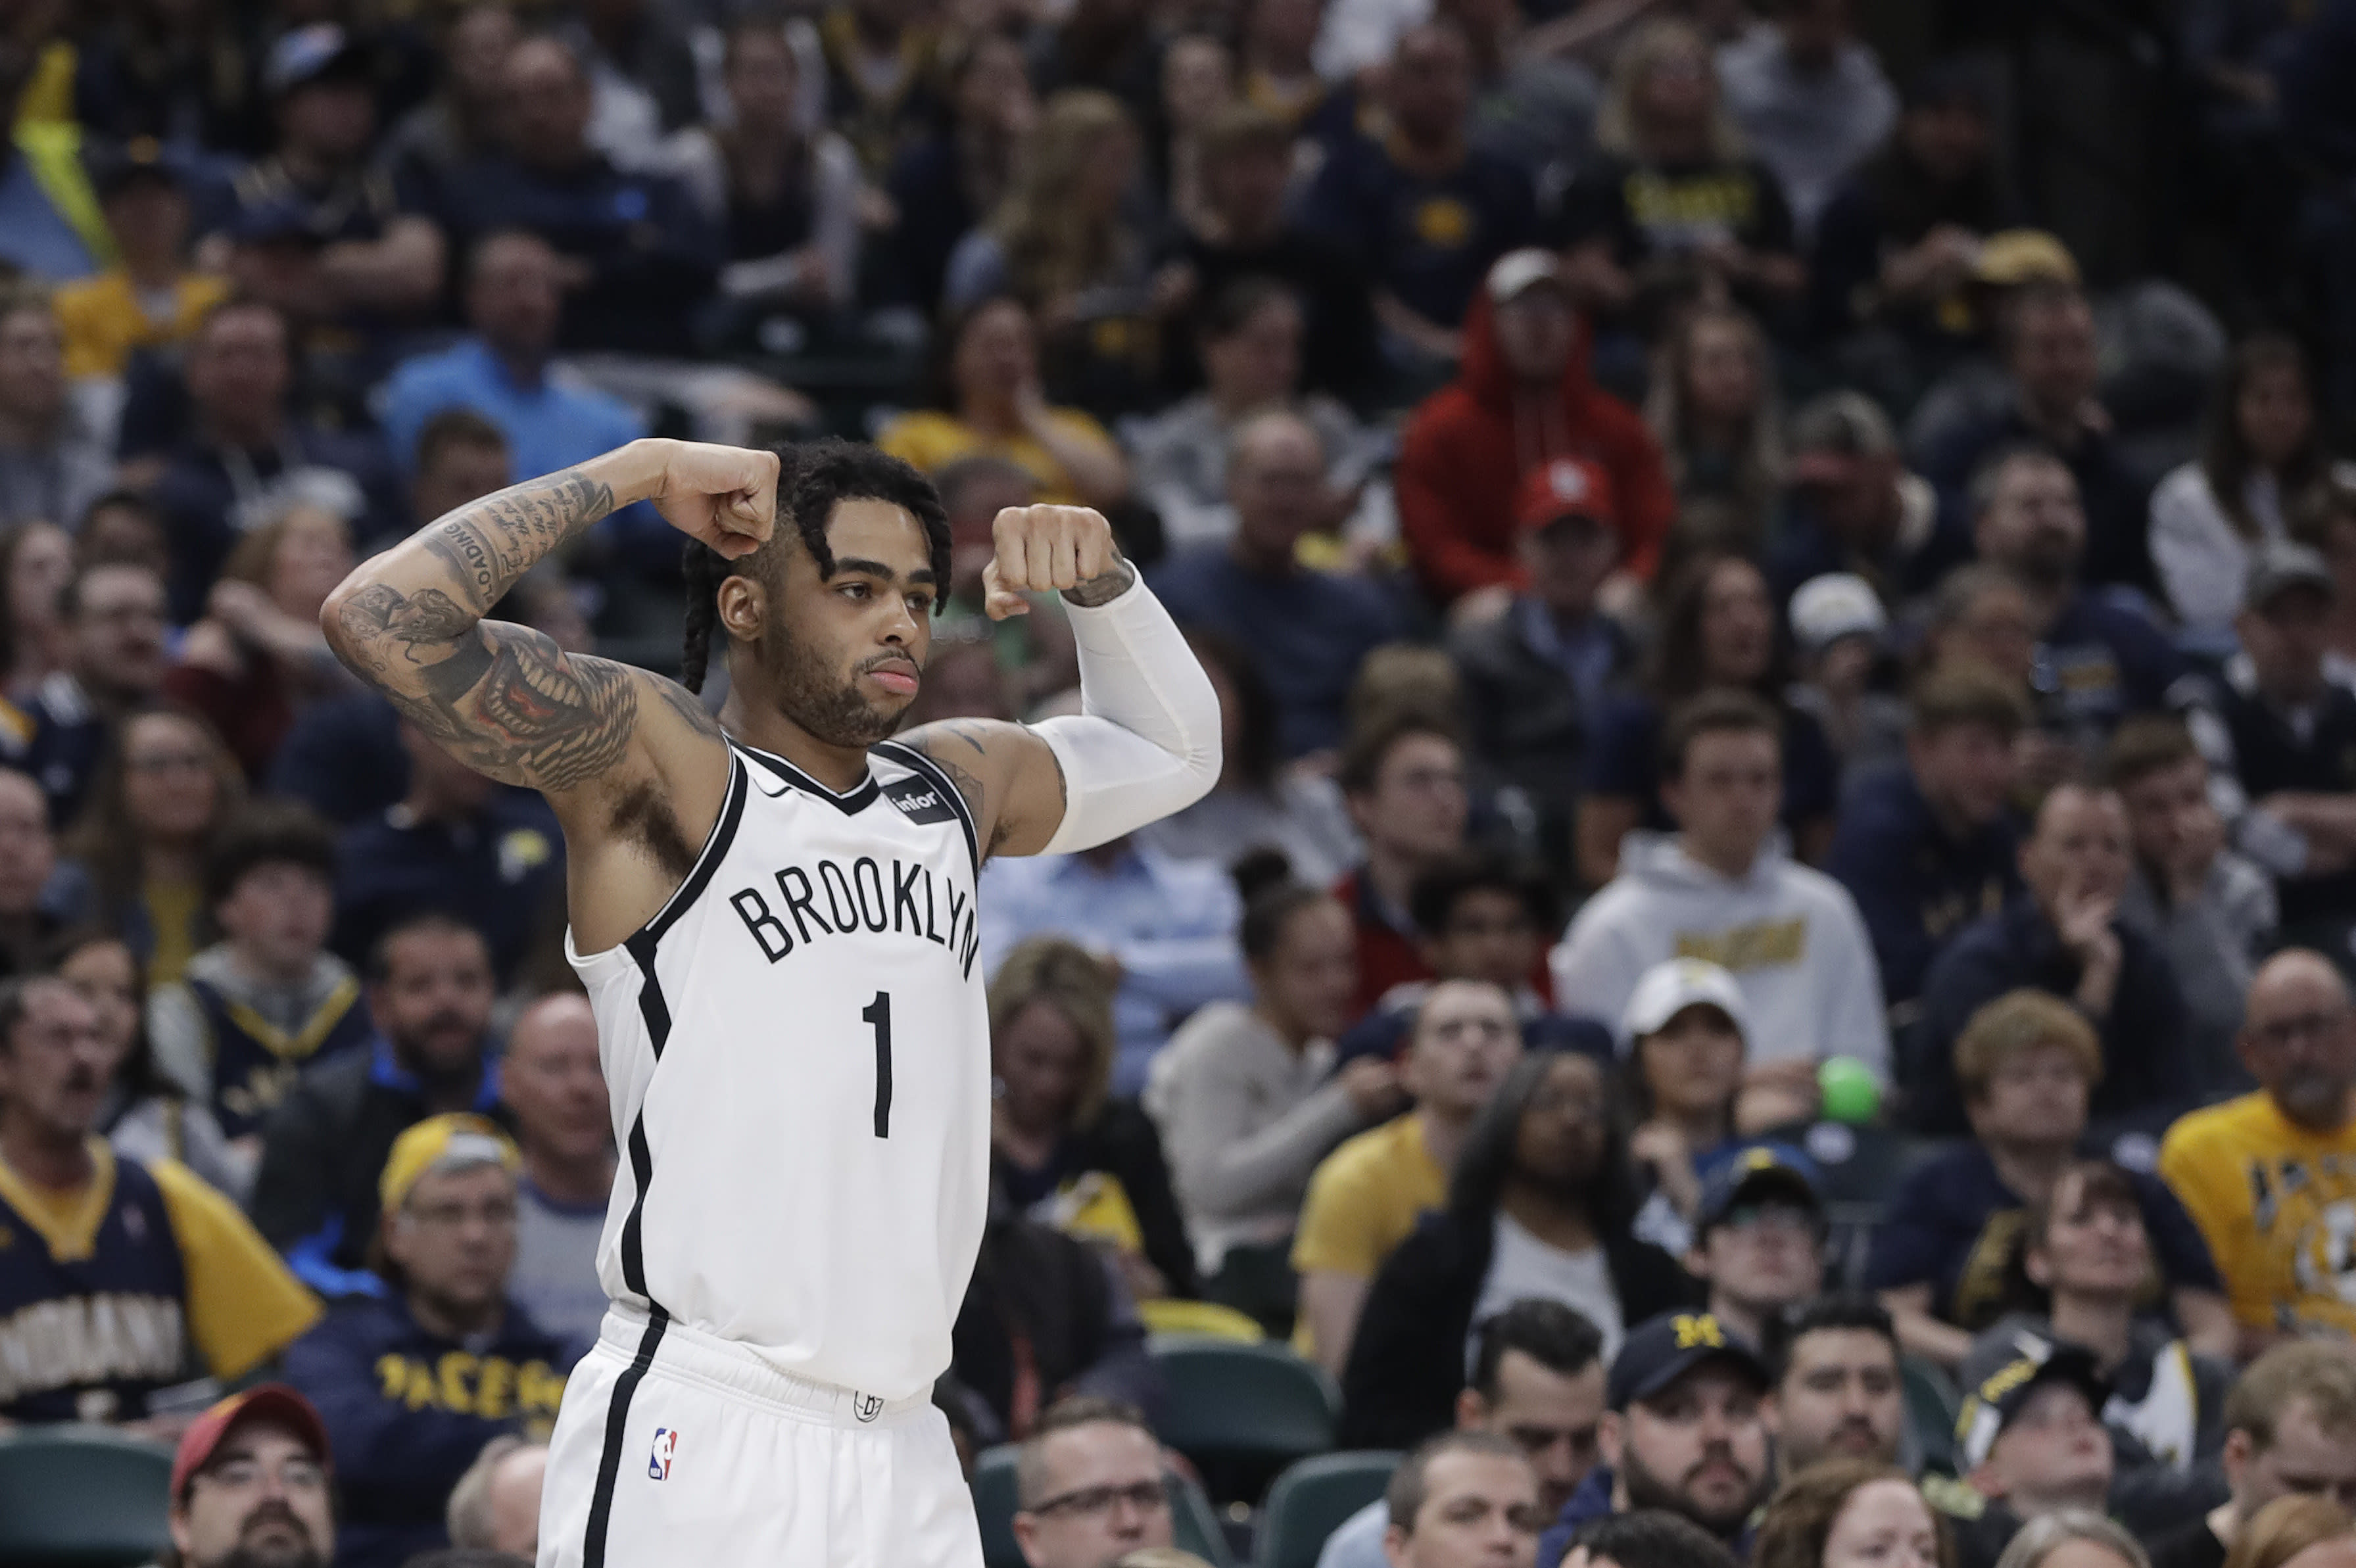 Are the Warriors acquiring D'Angelo Russell just to trade him?